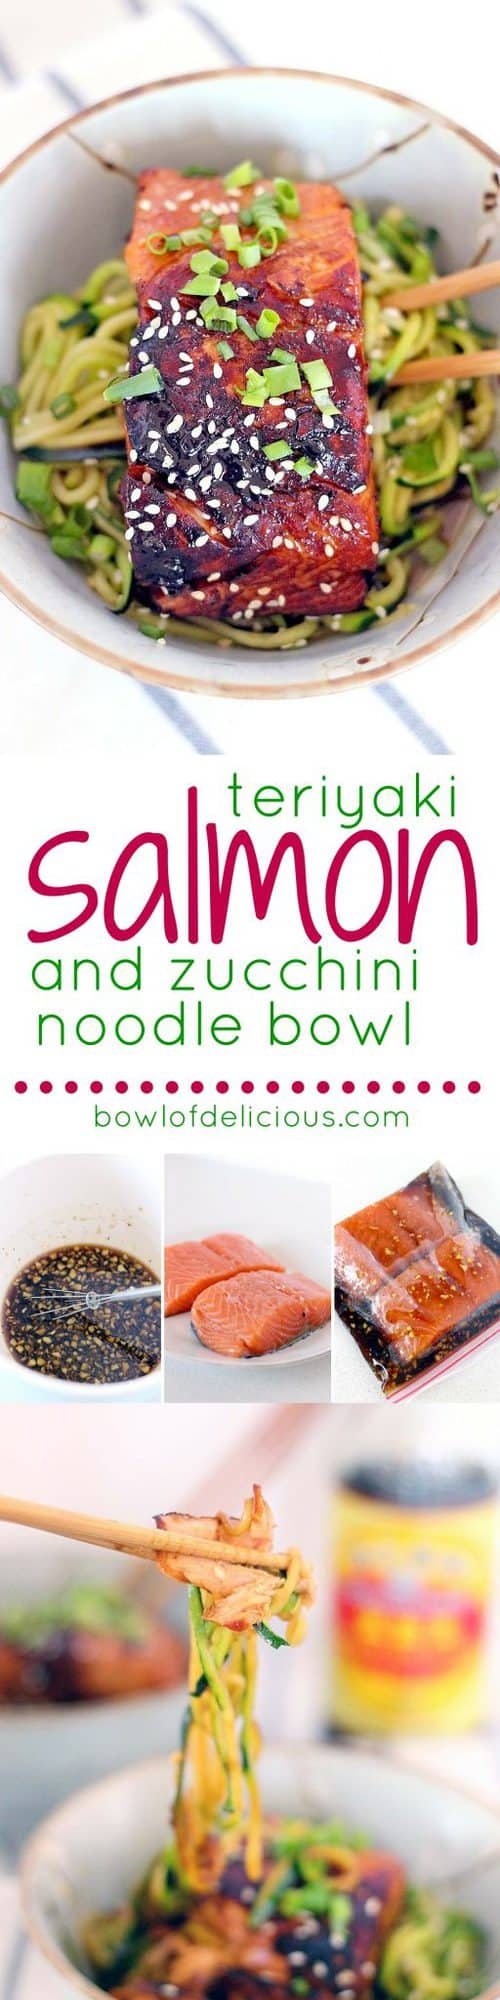 This healthy, low carb Teriyaki Salmon and Zucchini Noodle Bowl takes a mere FIFTEEN MINUTES to make and is bursting with that awesome Asian flavor you crave.